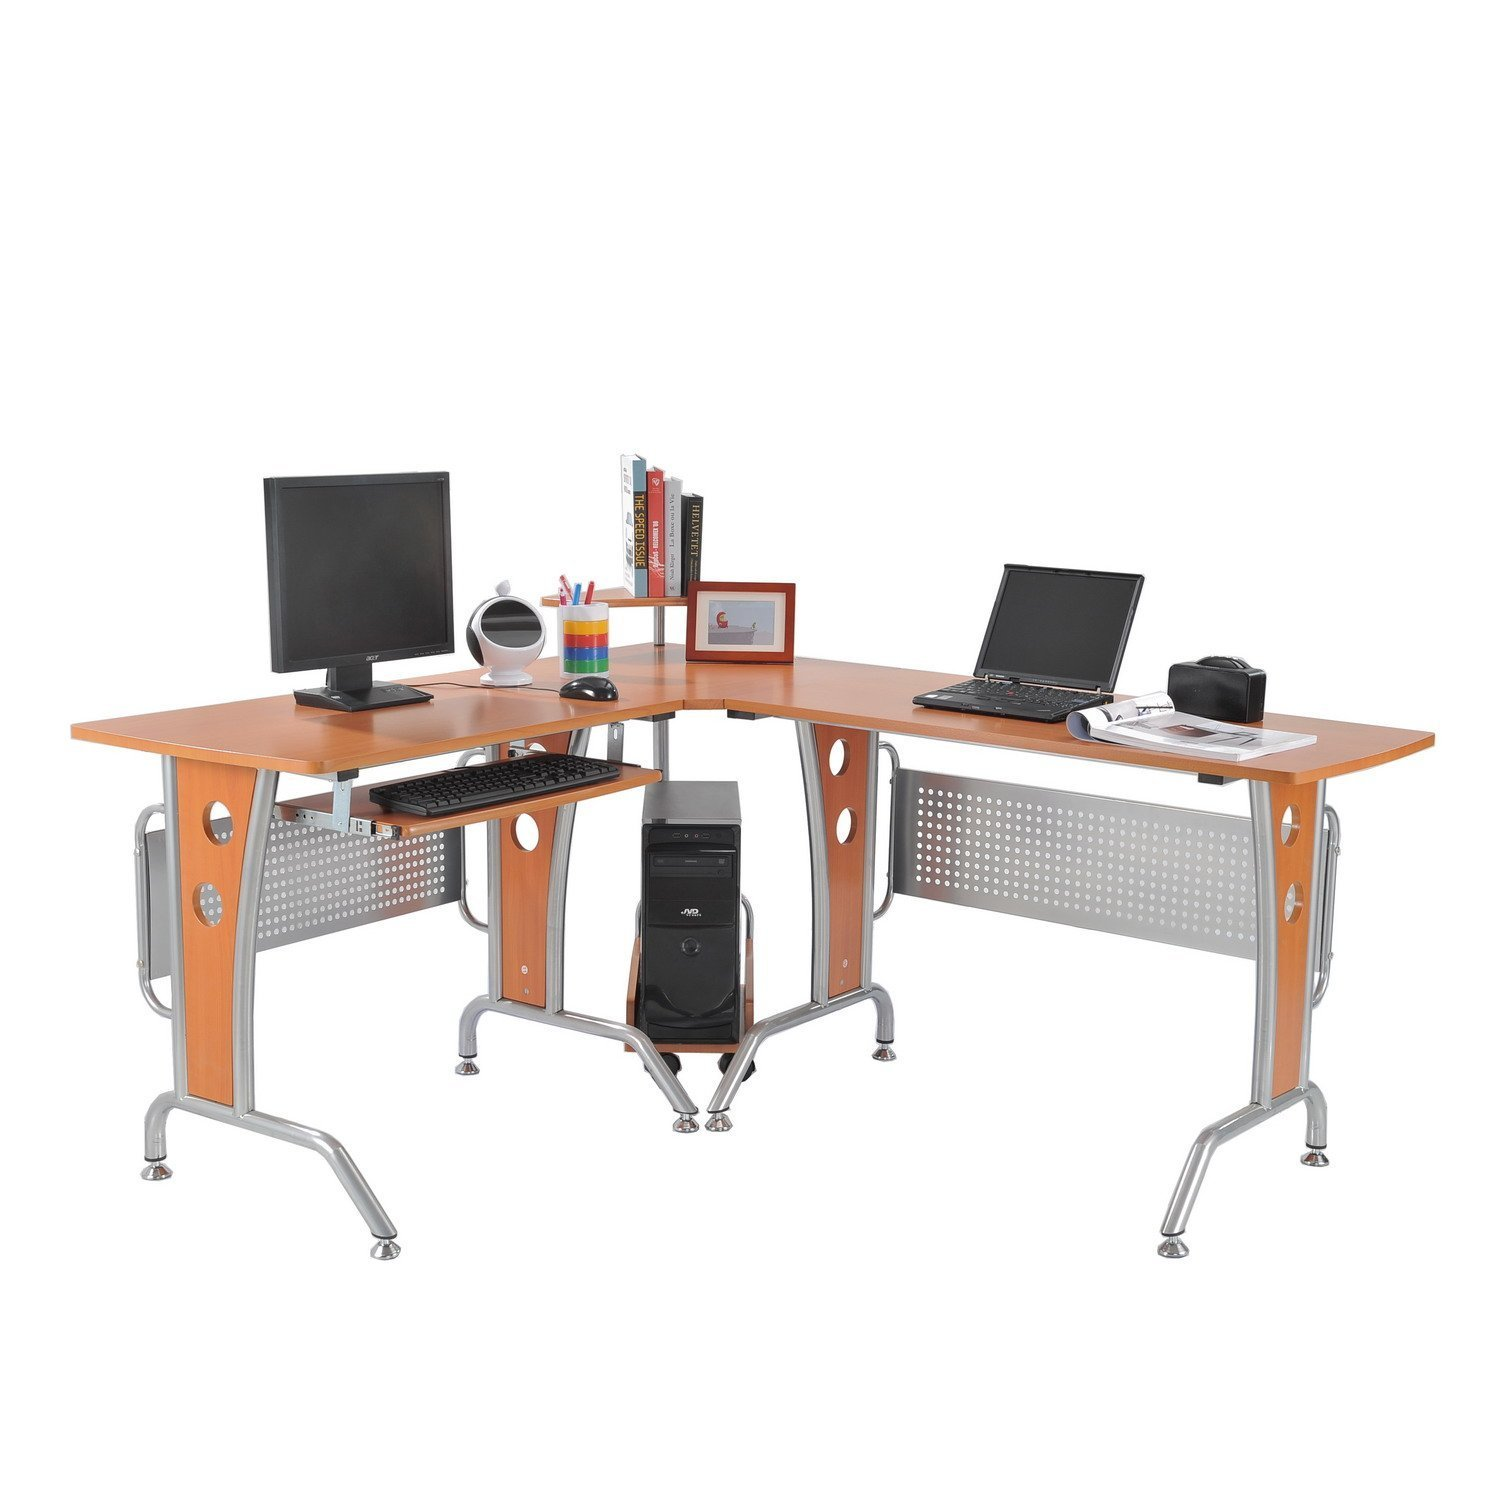 Eck computertisch  Homcom A2-0076 Computertisch, Holz, braun, 170 x 140 x 86,5 cm ...